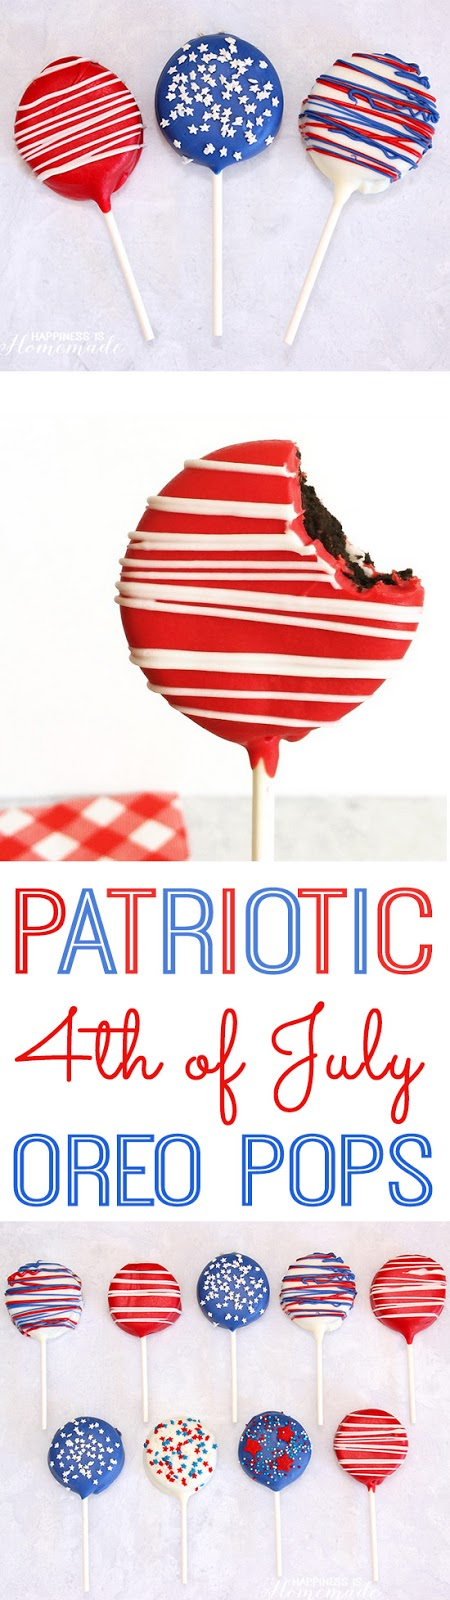 http://www.happinessishomemade.net/2015/06/11/patriotic-oreo-pops-for-4th-of-july/